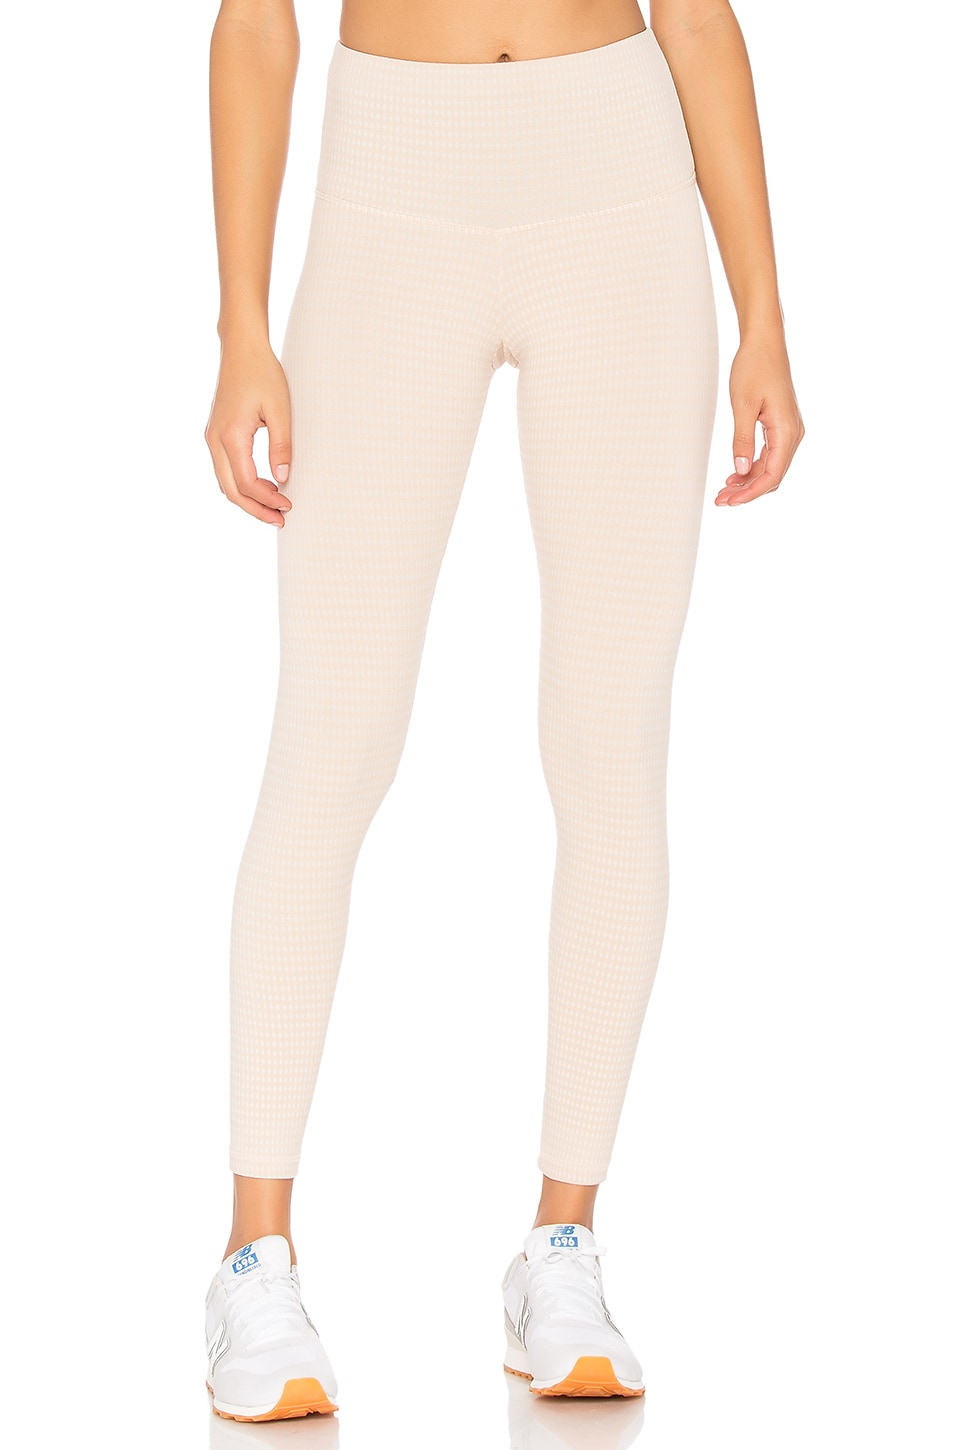 STRUT-THIS The Teagan Legging in Nude Chex